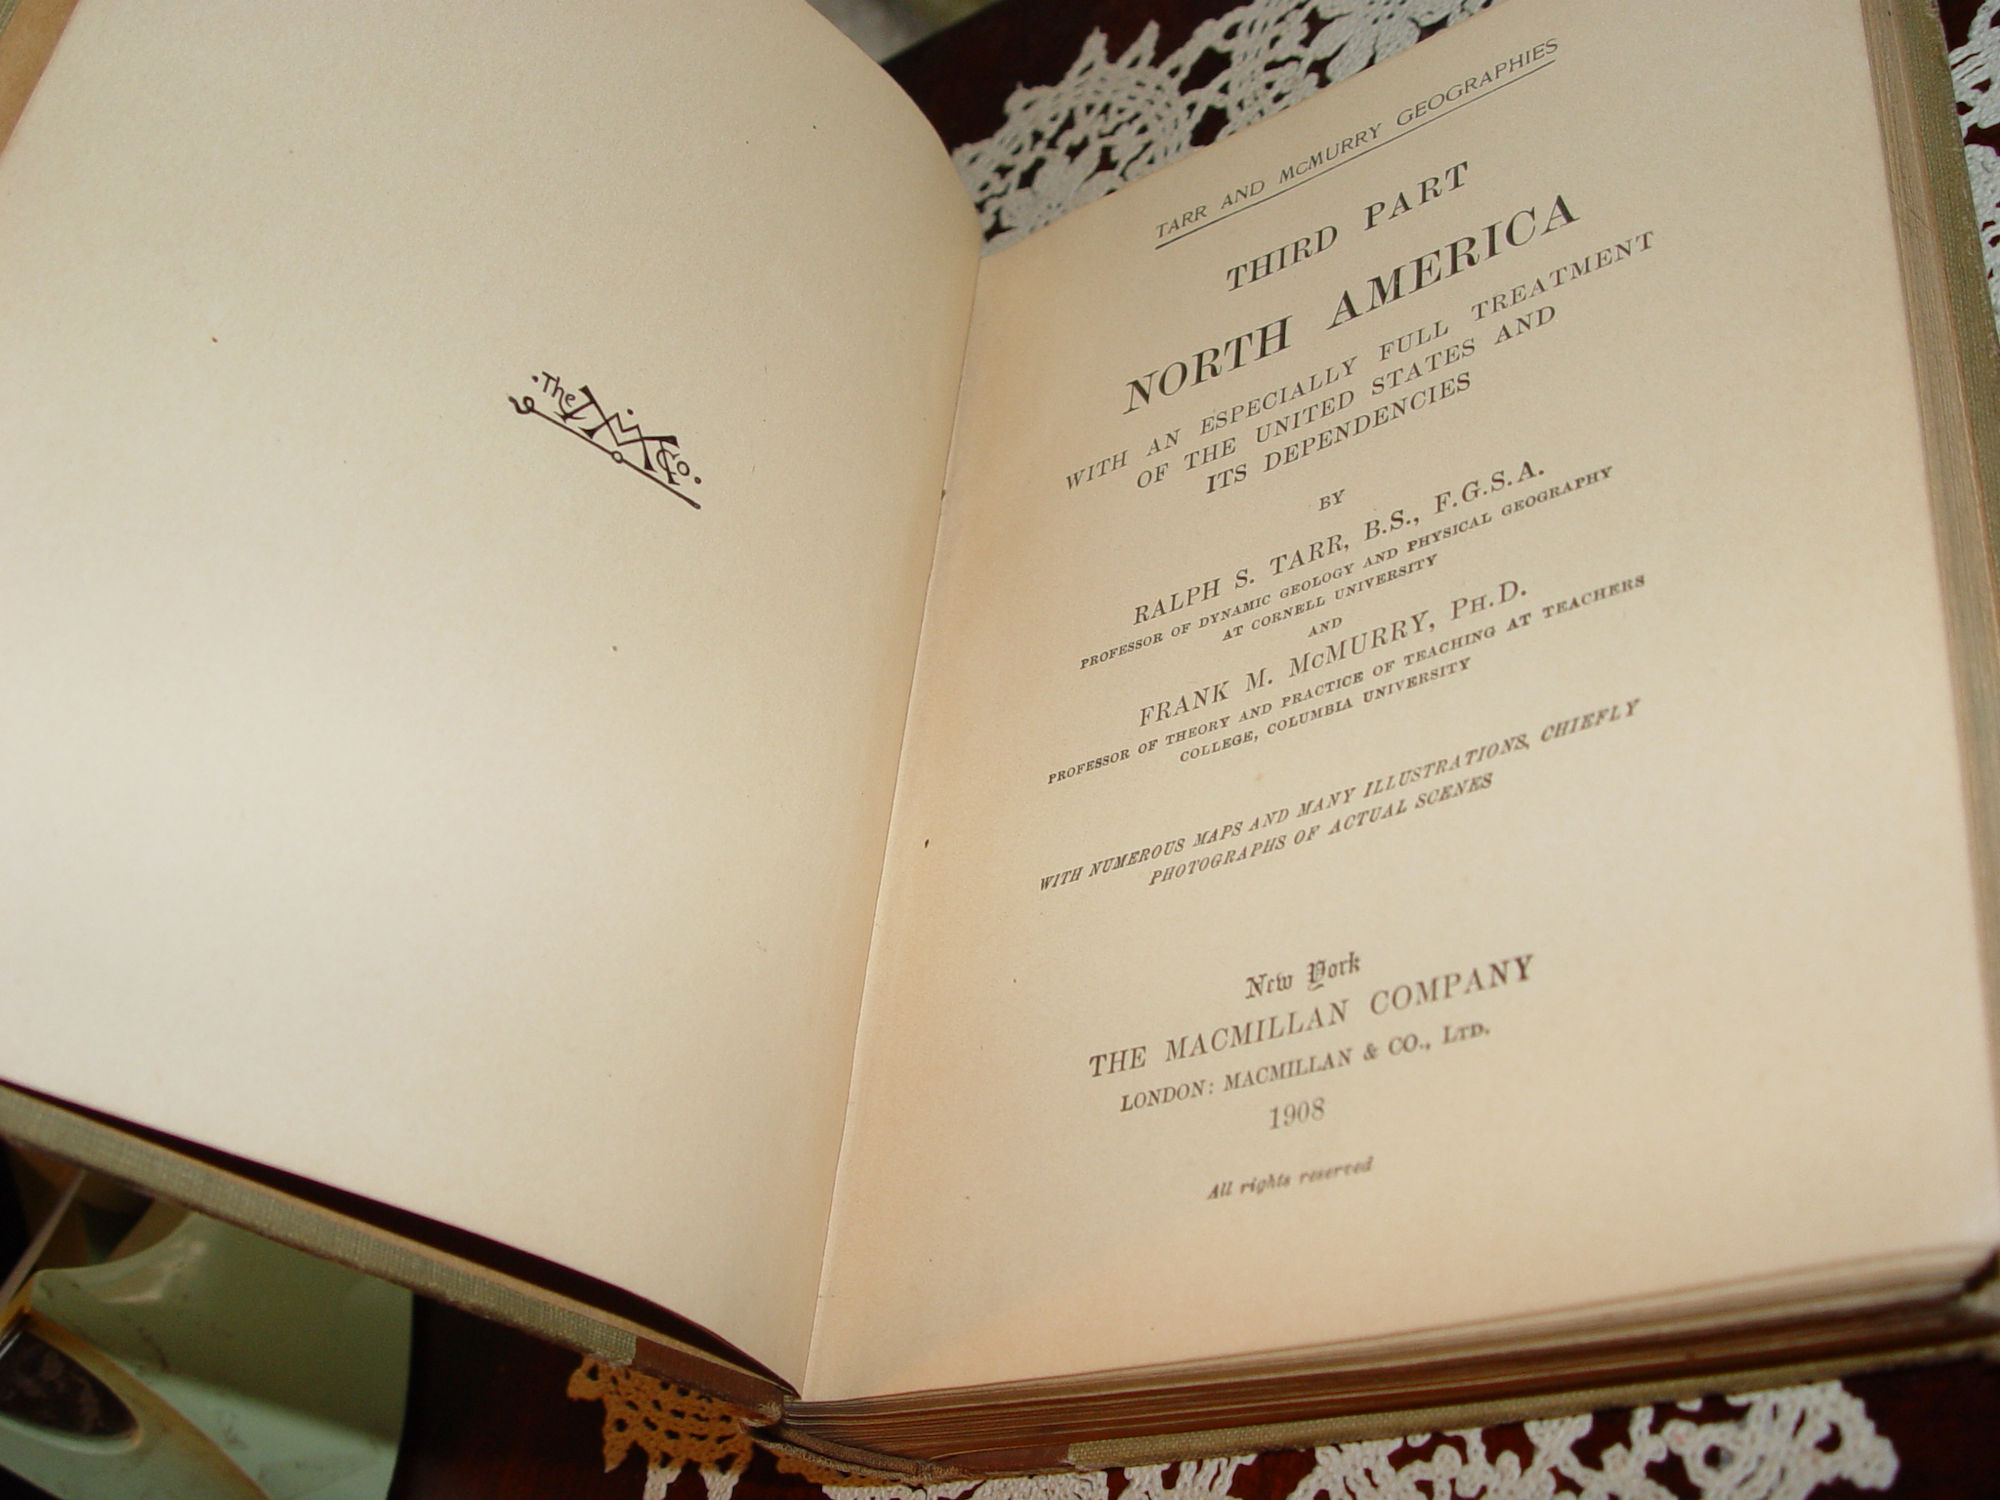 Langenscheidt's                                         Pocket - Dictionary of the                                         English and German Languages,                                         1911 by Hermann Lindemann, Ph.D